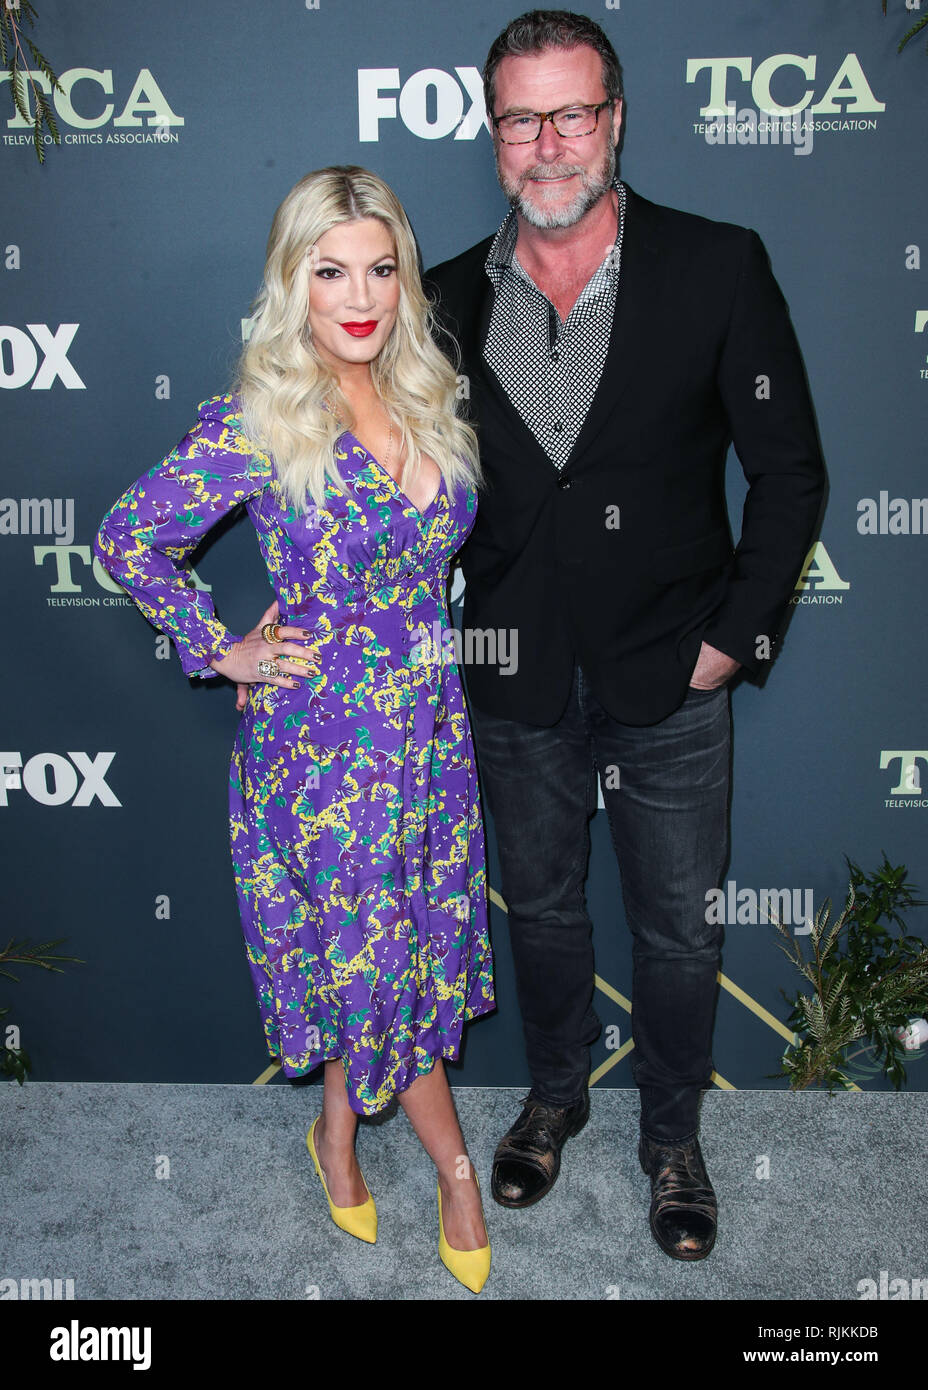 Tori Spelling And Her Husband Stock s & Tori Spelling And Her